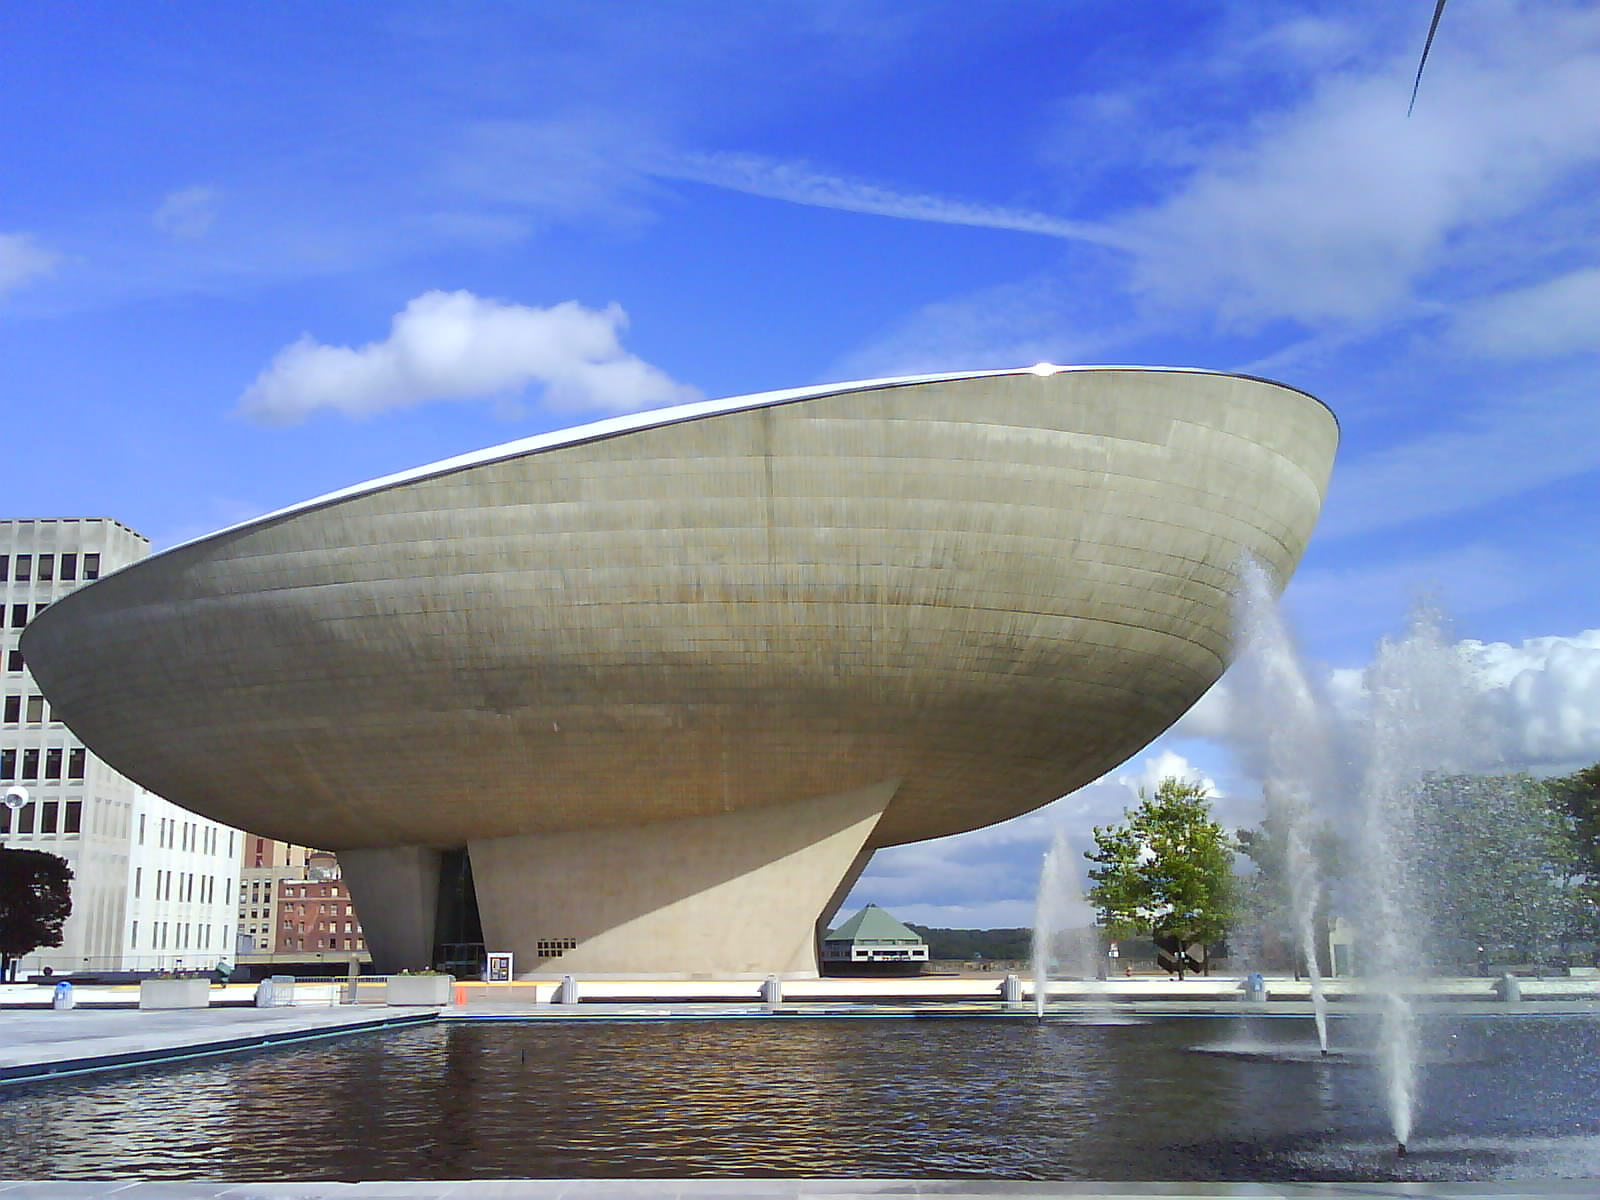 New Albany (IN) United States  city images : The Egg Empire State Plaza, Albany, New York, United States